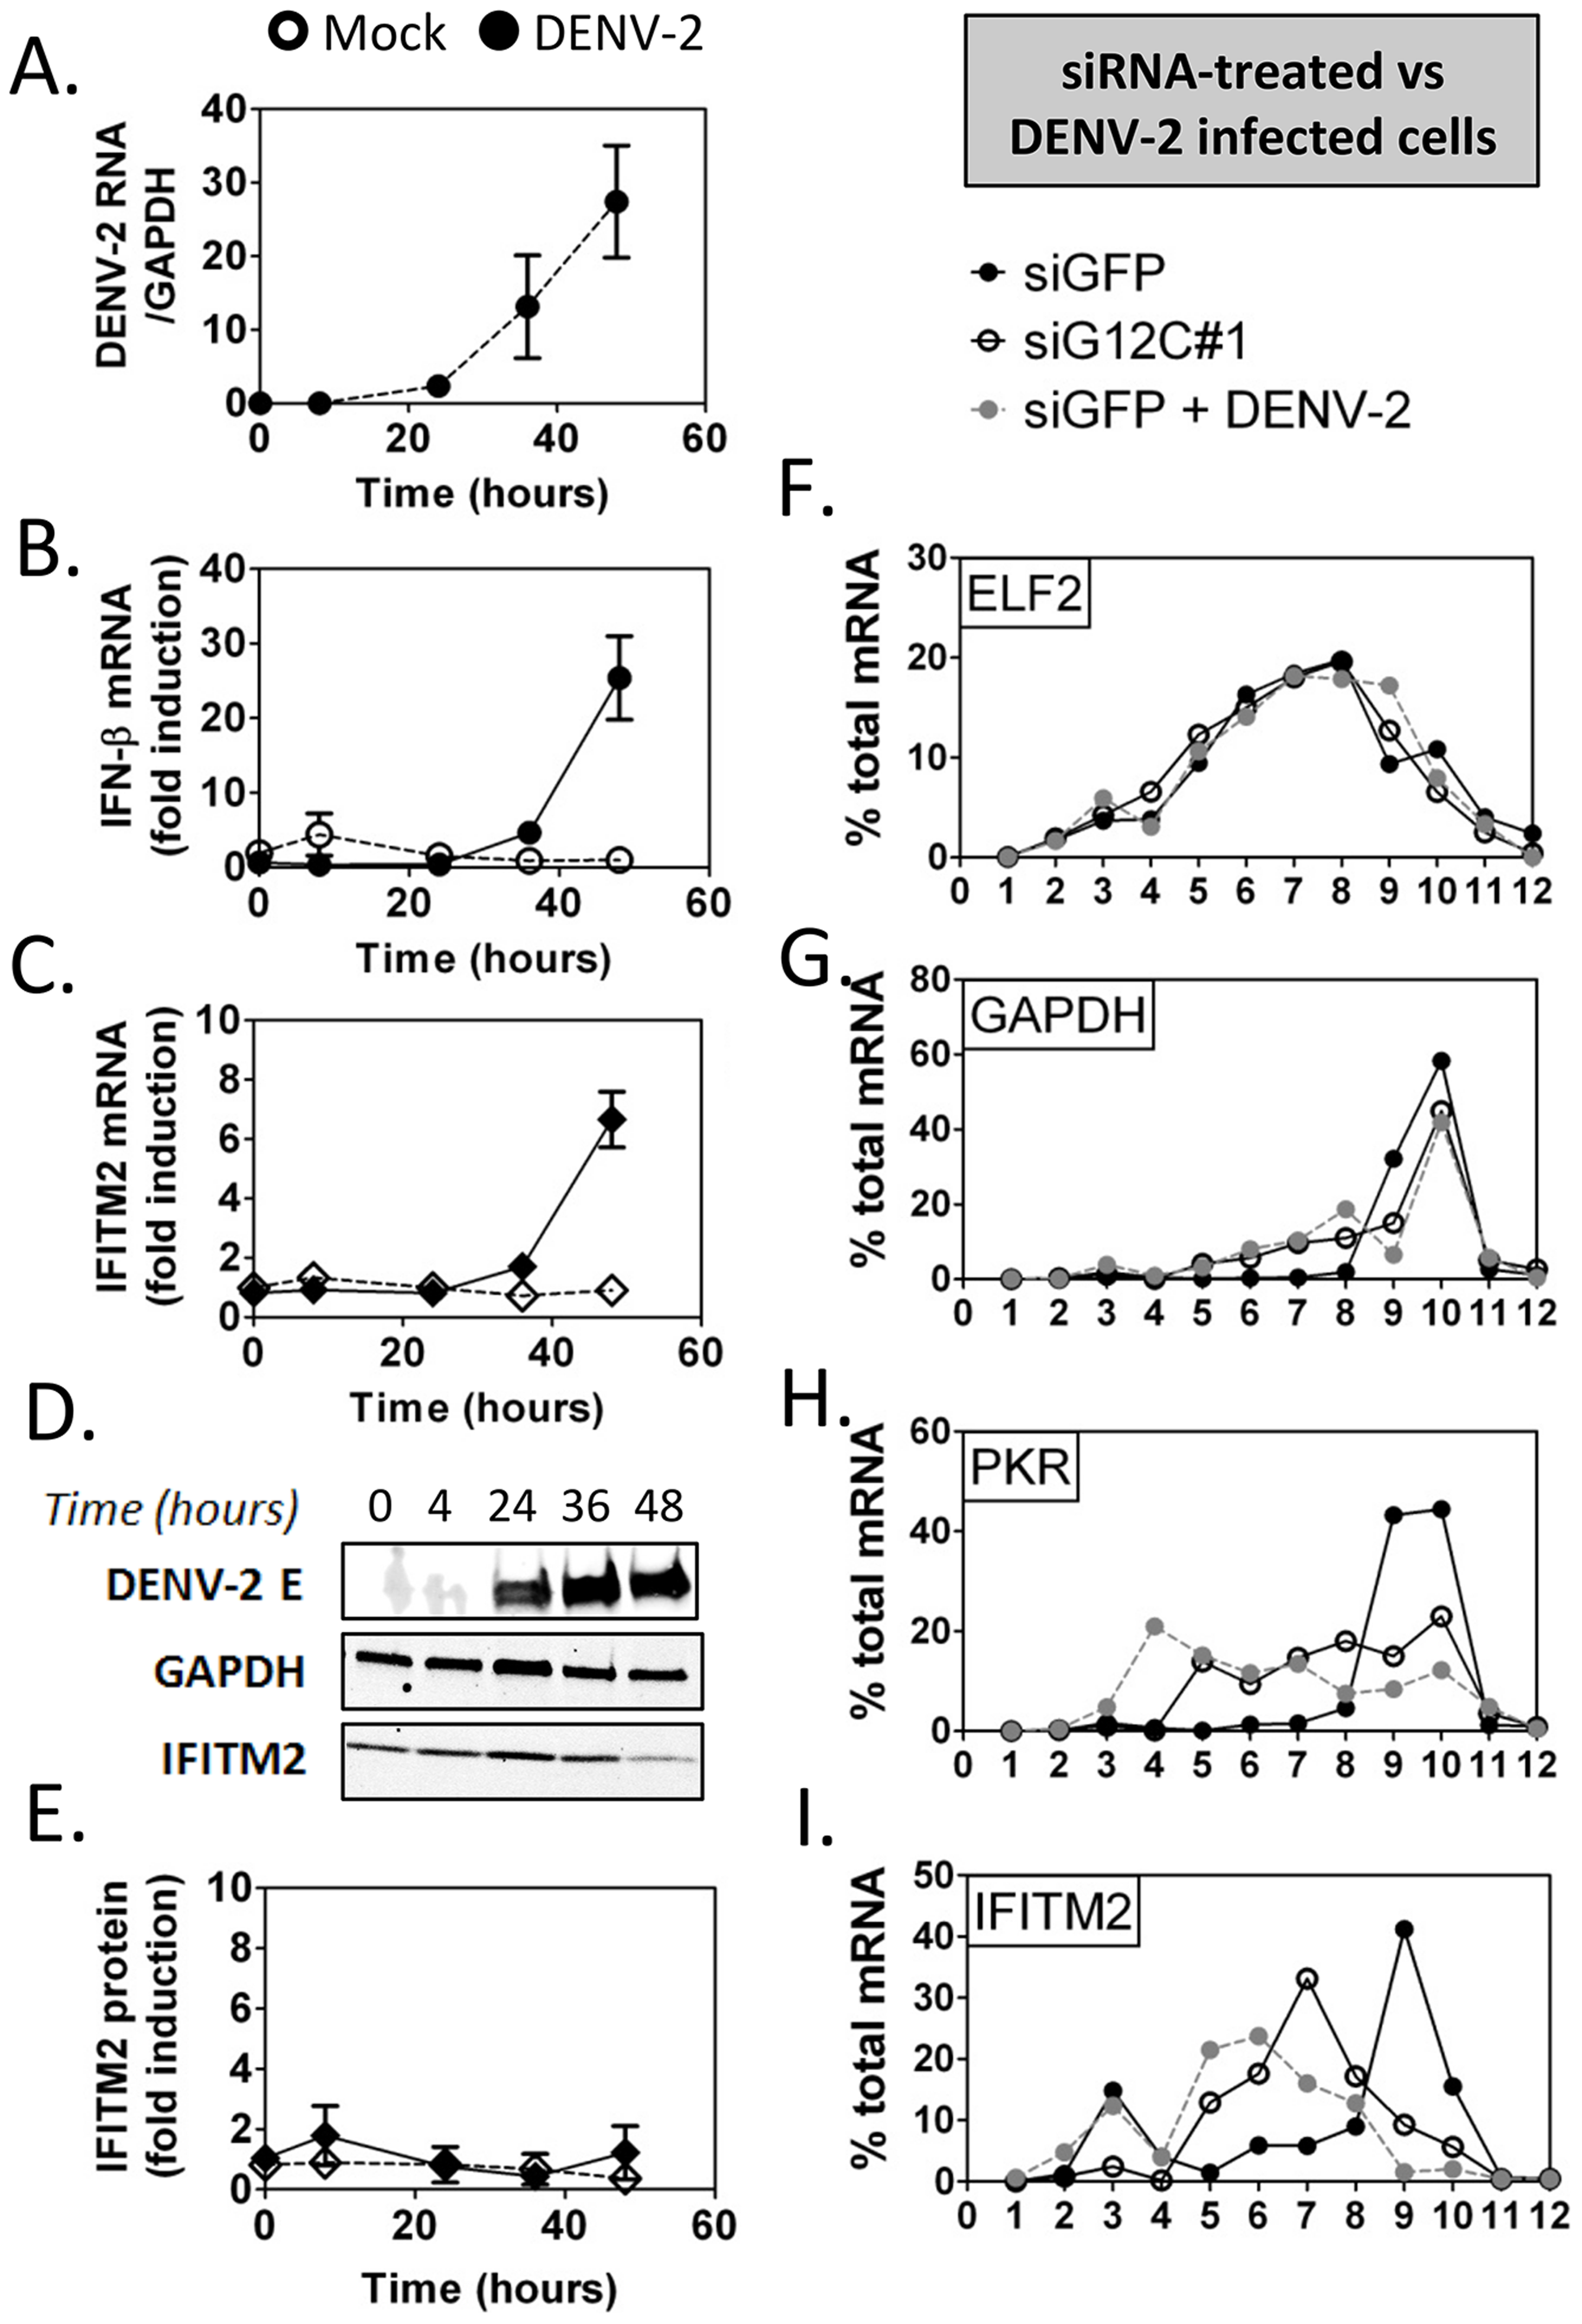 DENV-2 infection interferes with ISG protein expression.